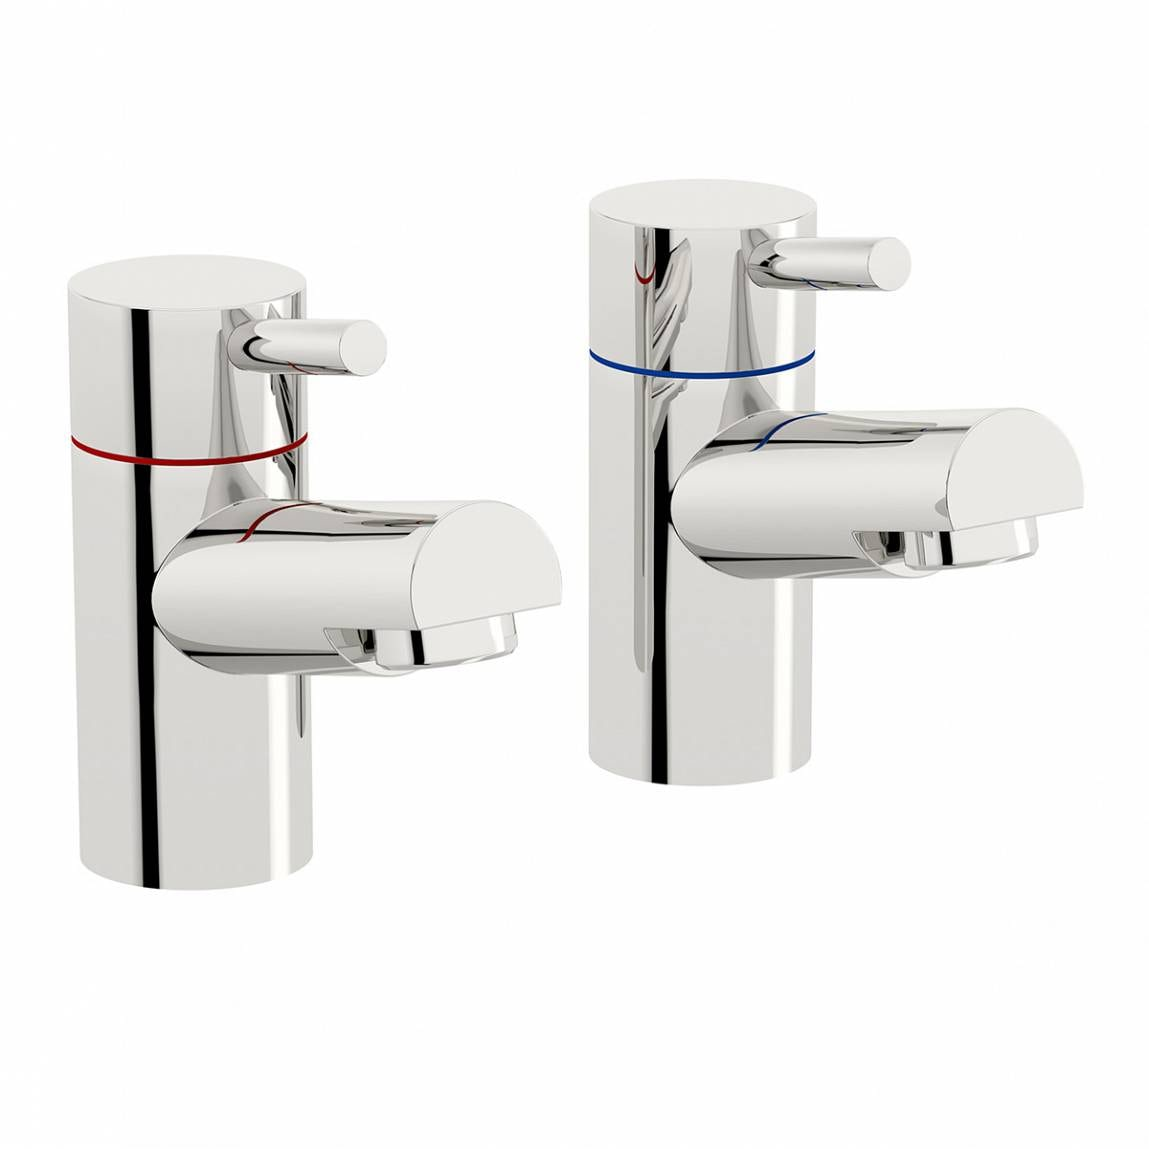 Orchard Matrix basin pillar taps